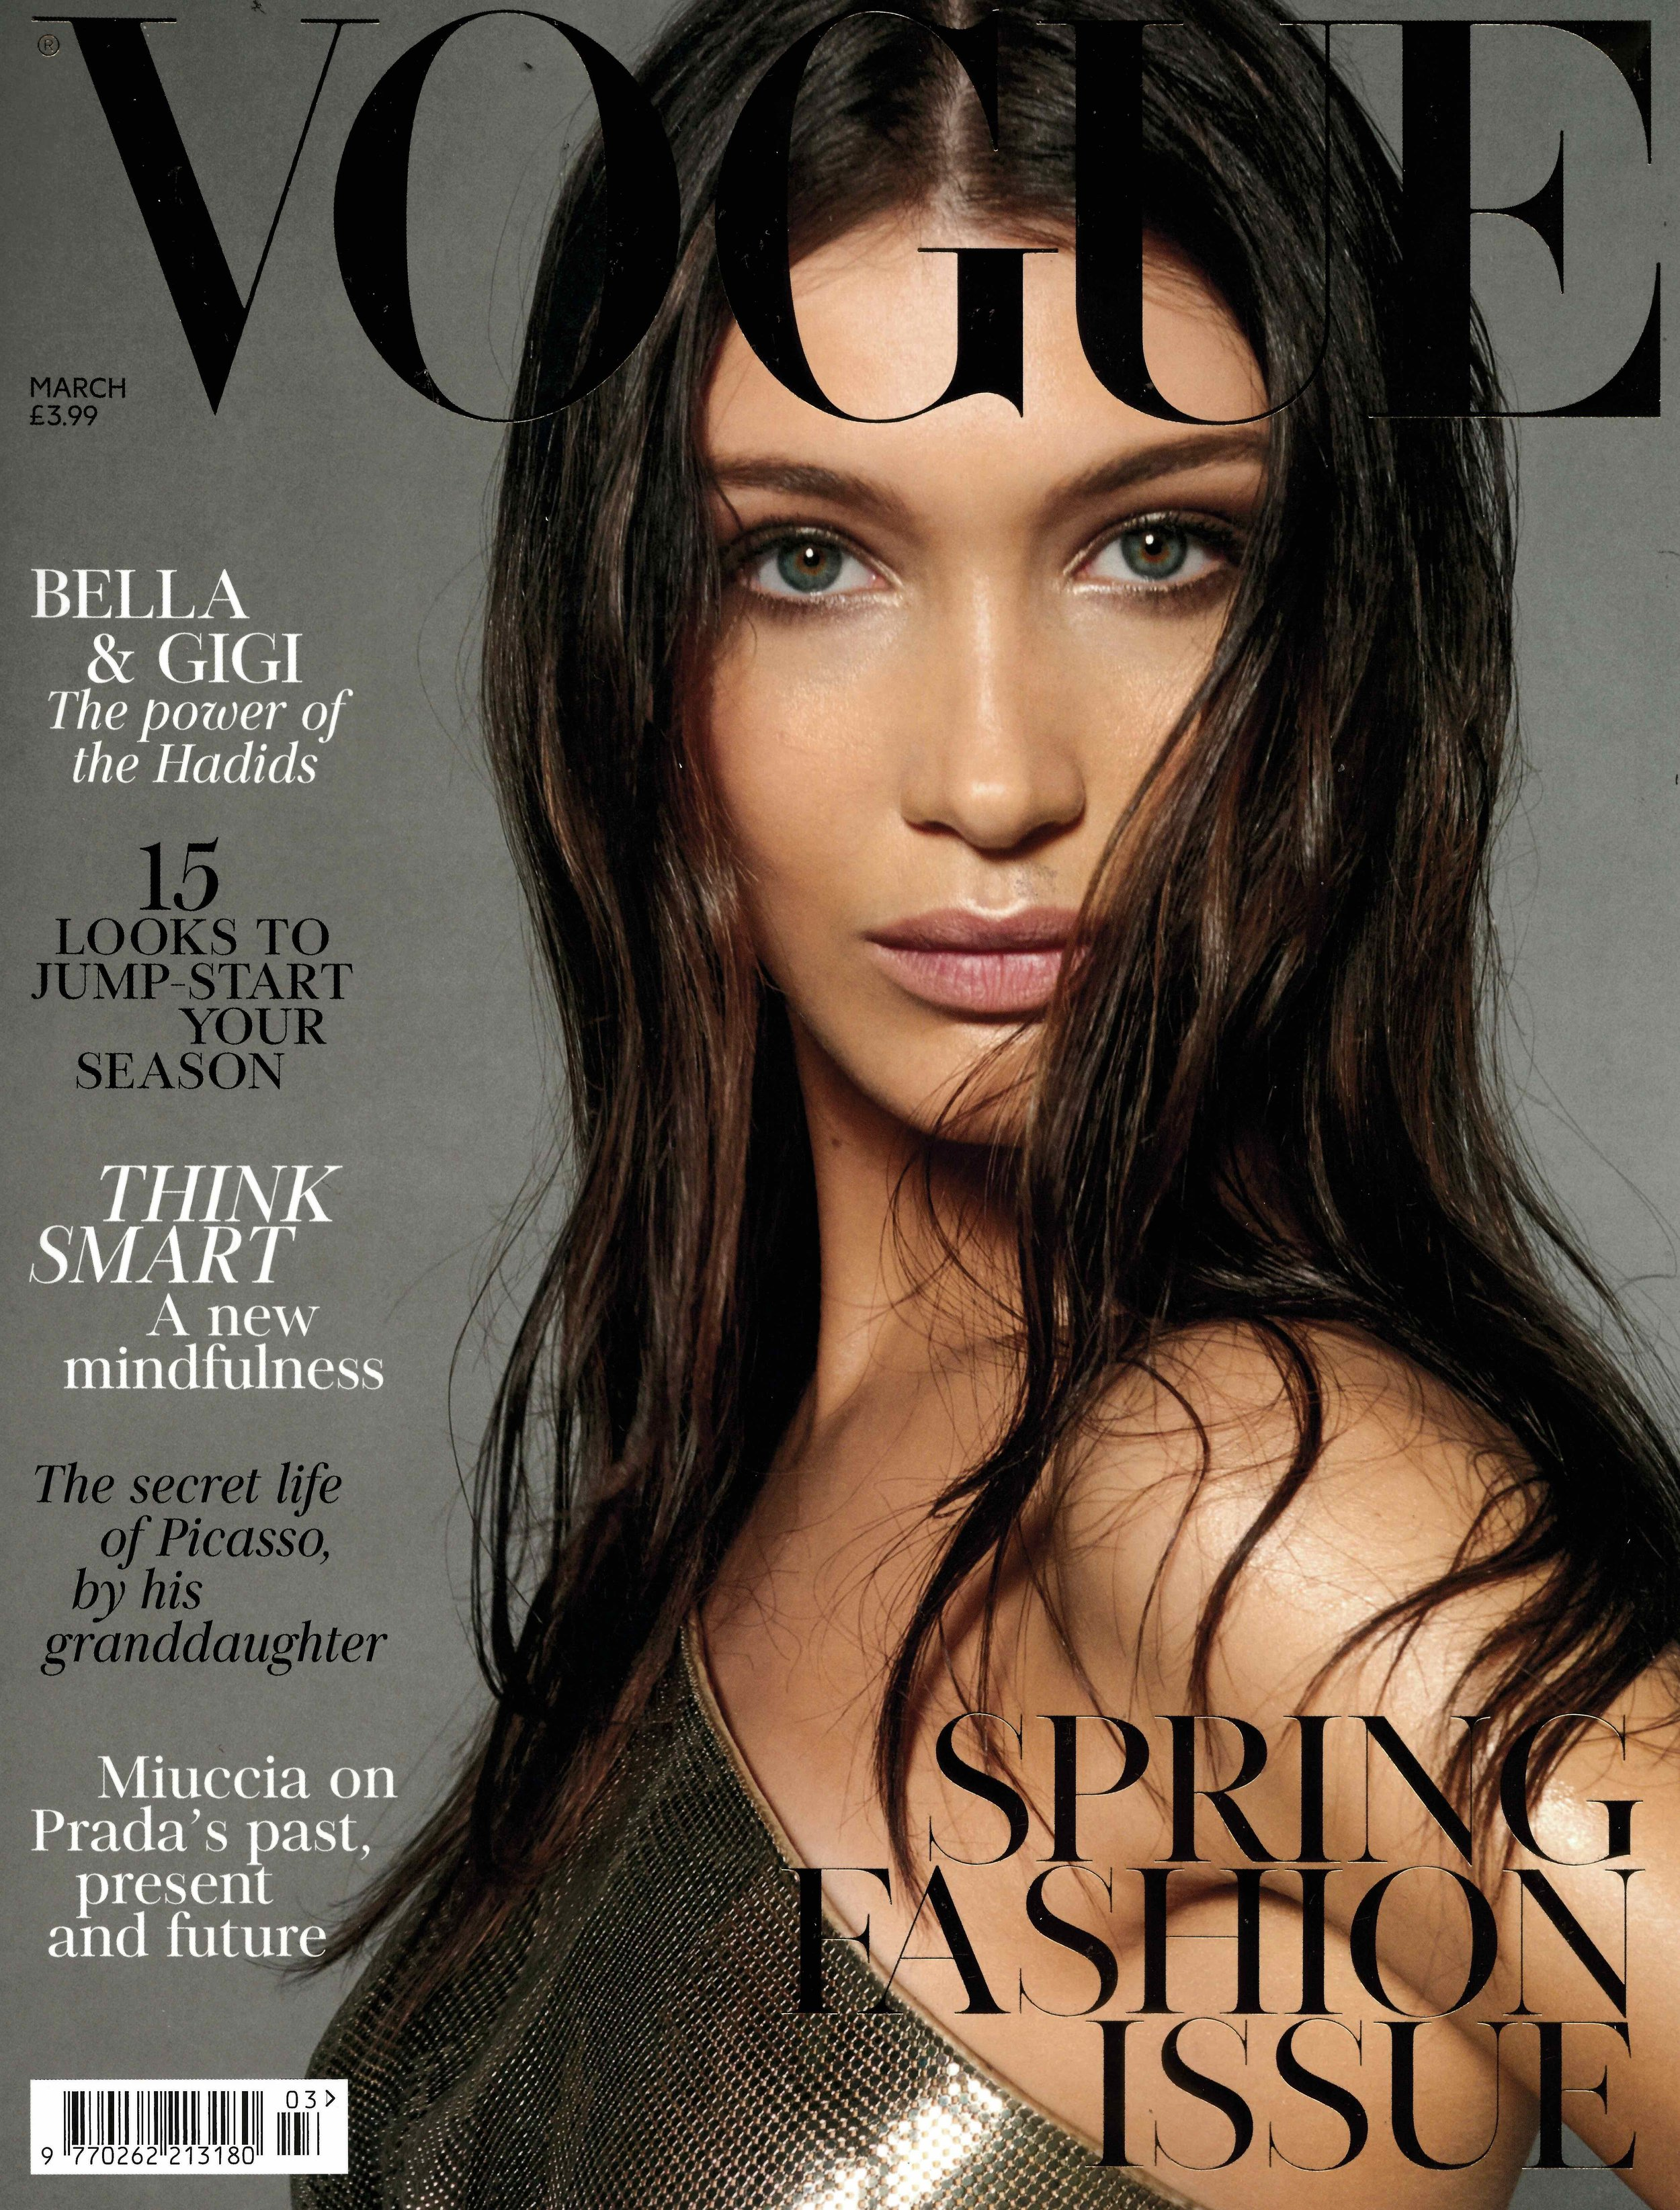 March Issue Vogue cover - 1 (1).jpg